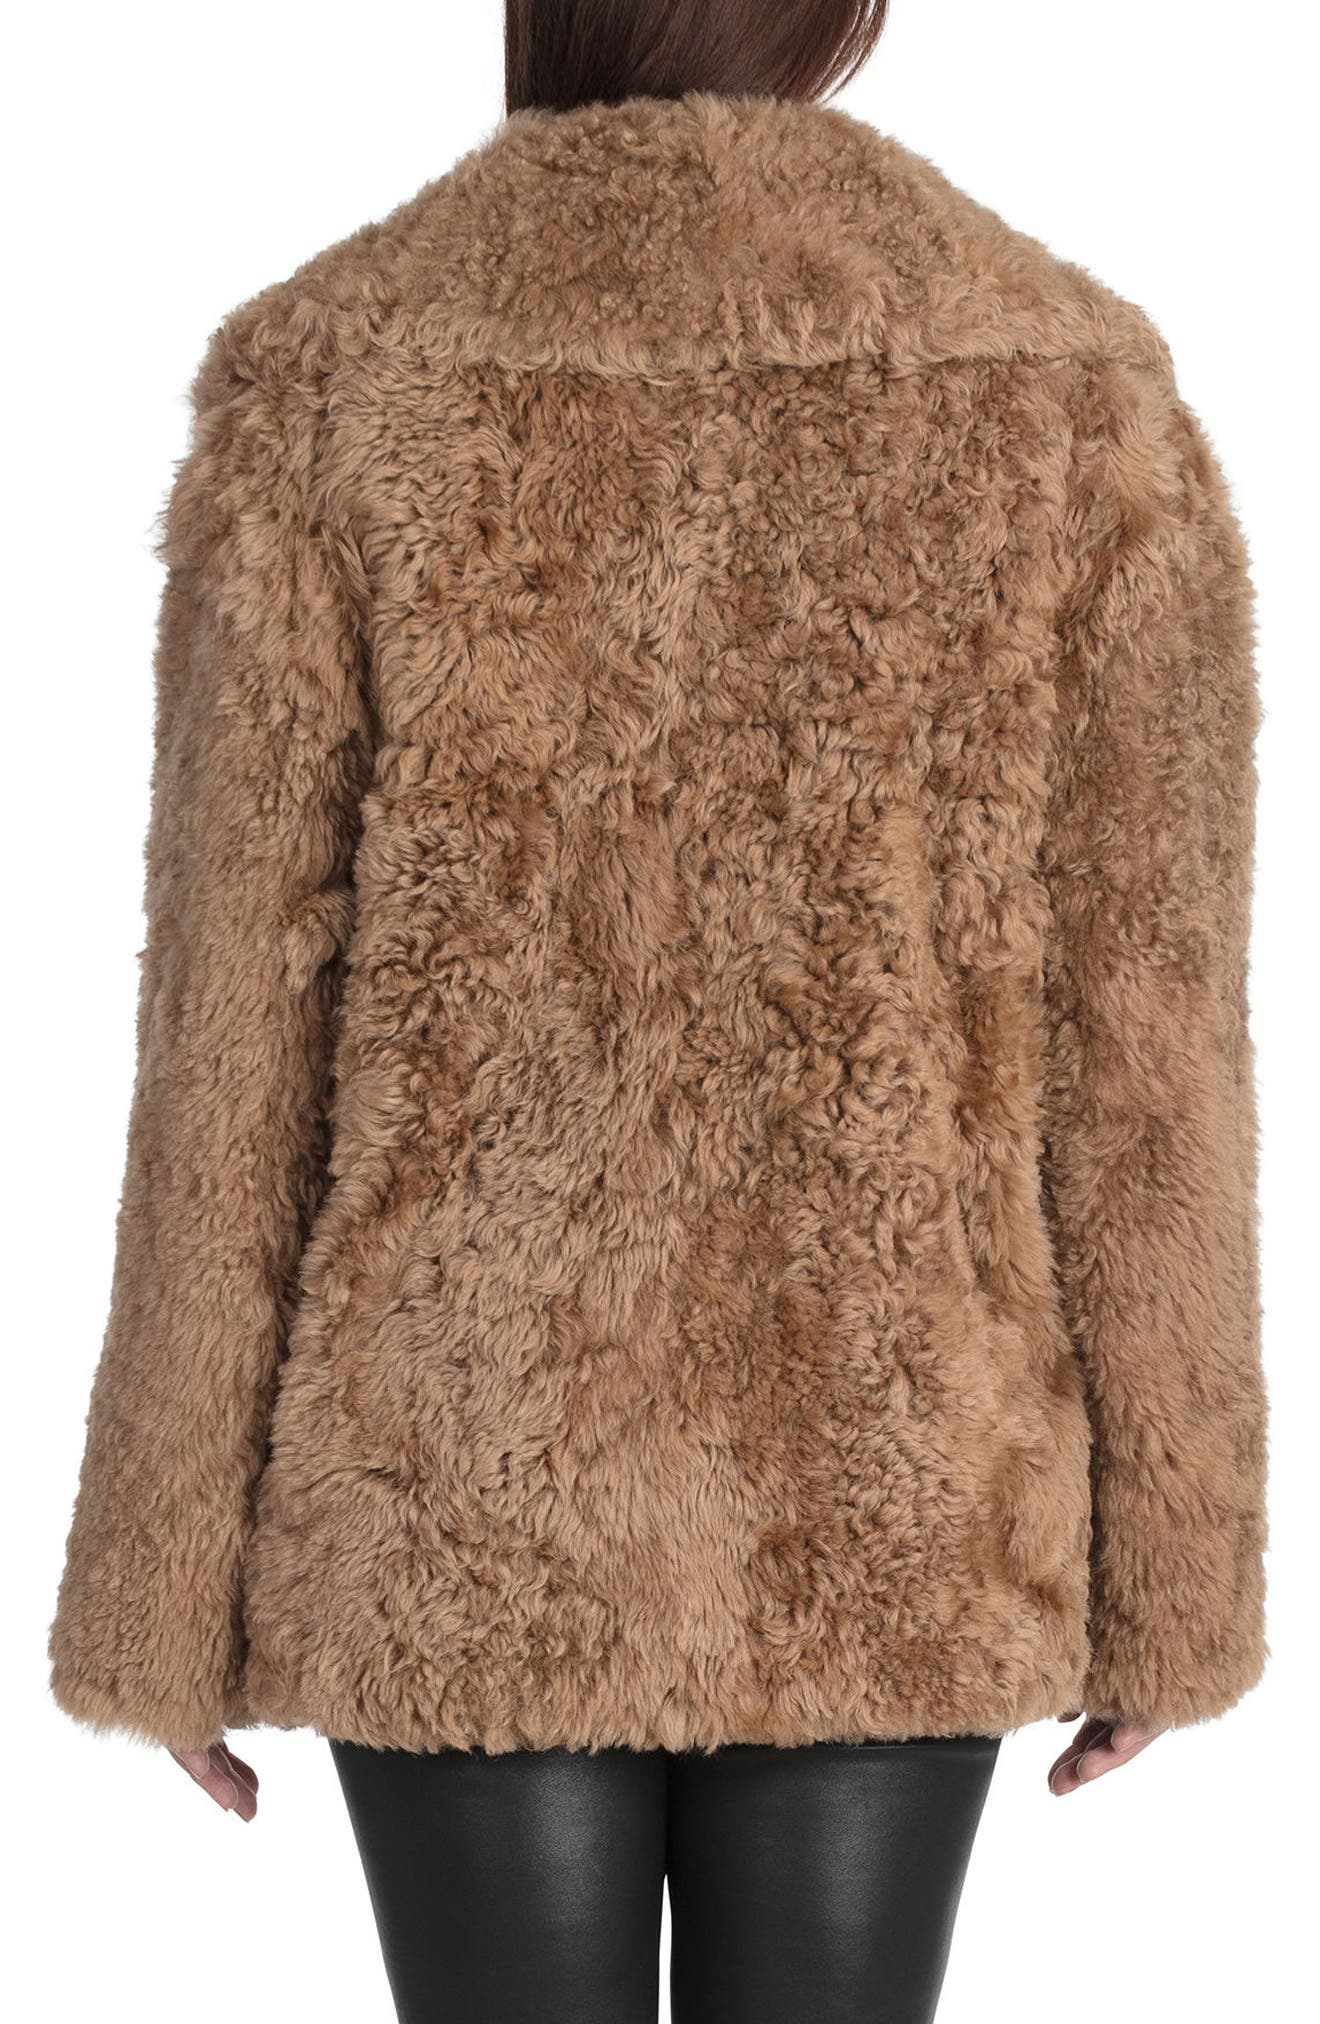 BAGATELLE.CITY The Teddy Genuine Lamb Shearling Coat,                             Alternate thumbnail 2, color,                             Camel